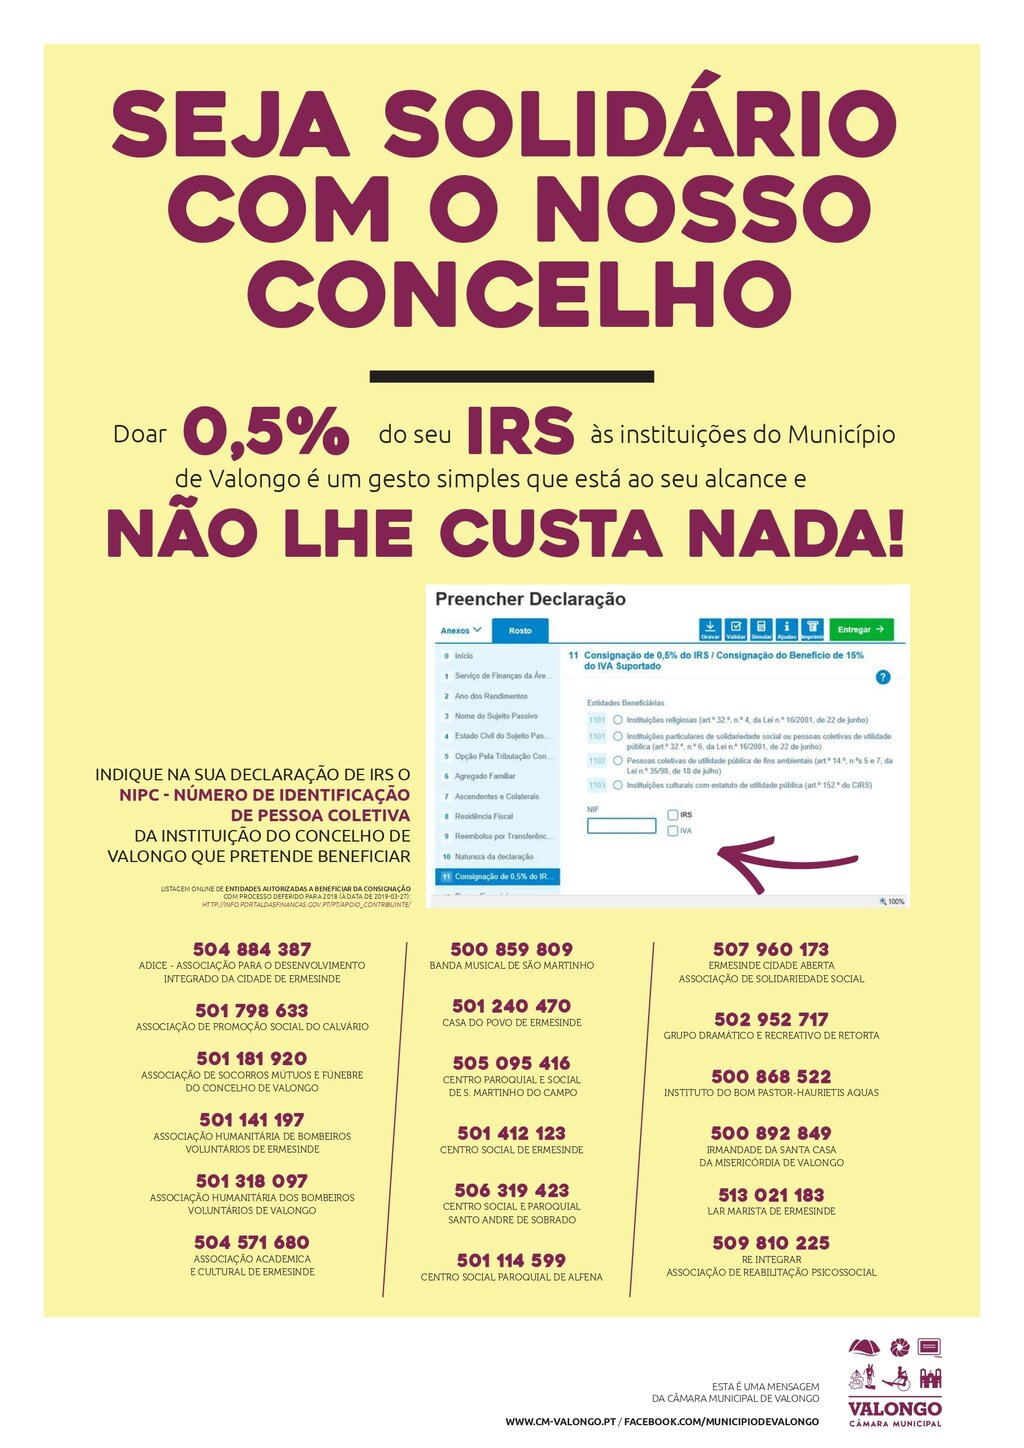 Ajude as instituições do concelho doando 0,5% do IRS